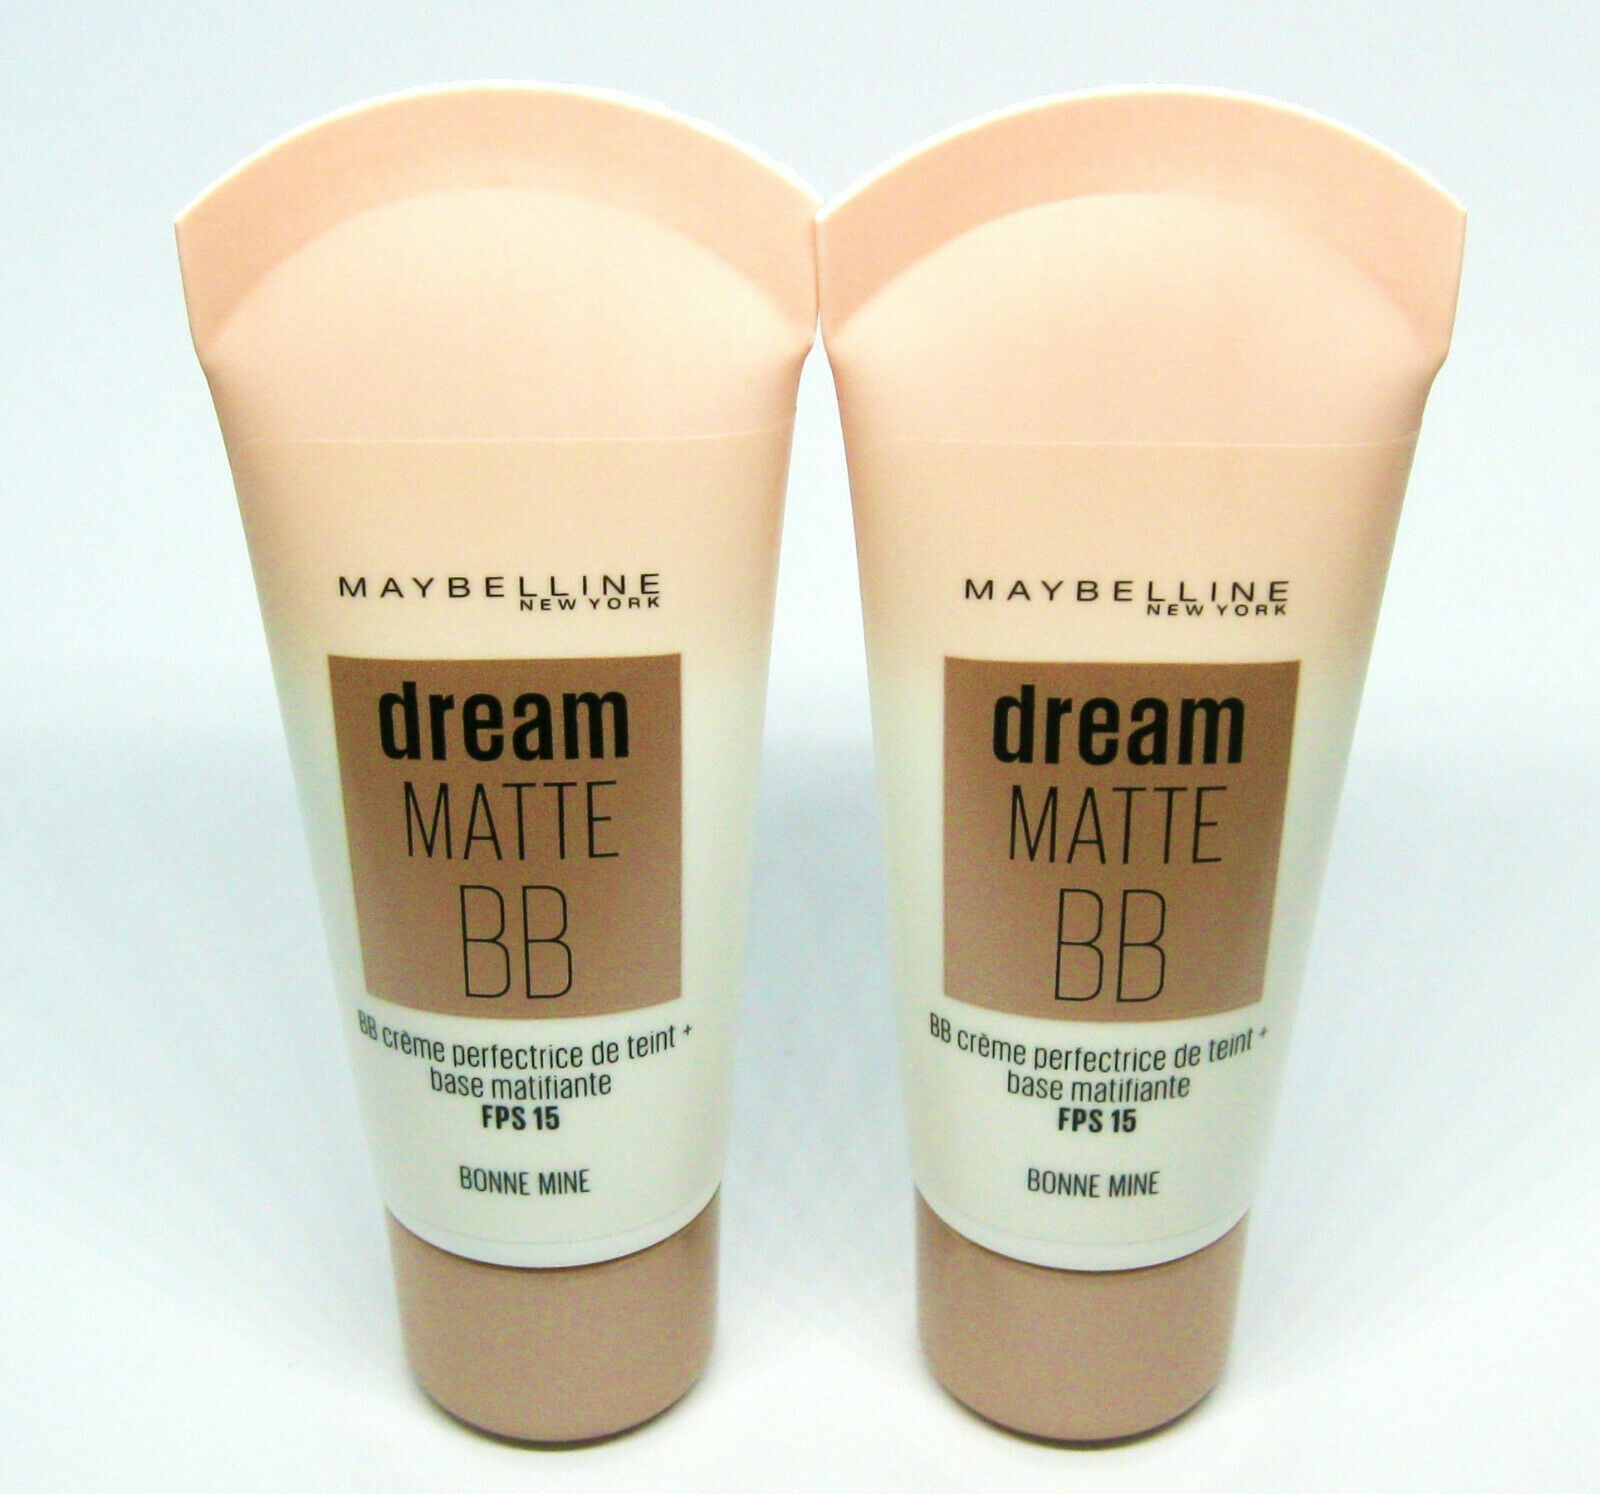 2 x MAYBELLINE dream MATTE PURE BB CREAM 8-EN-1  BONNE MINE / MEDIUM